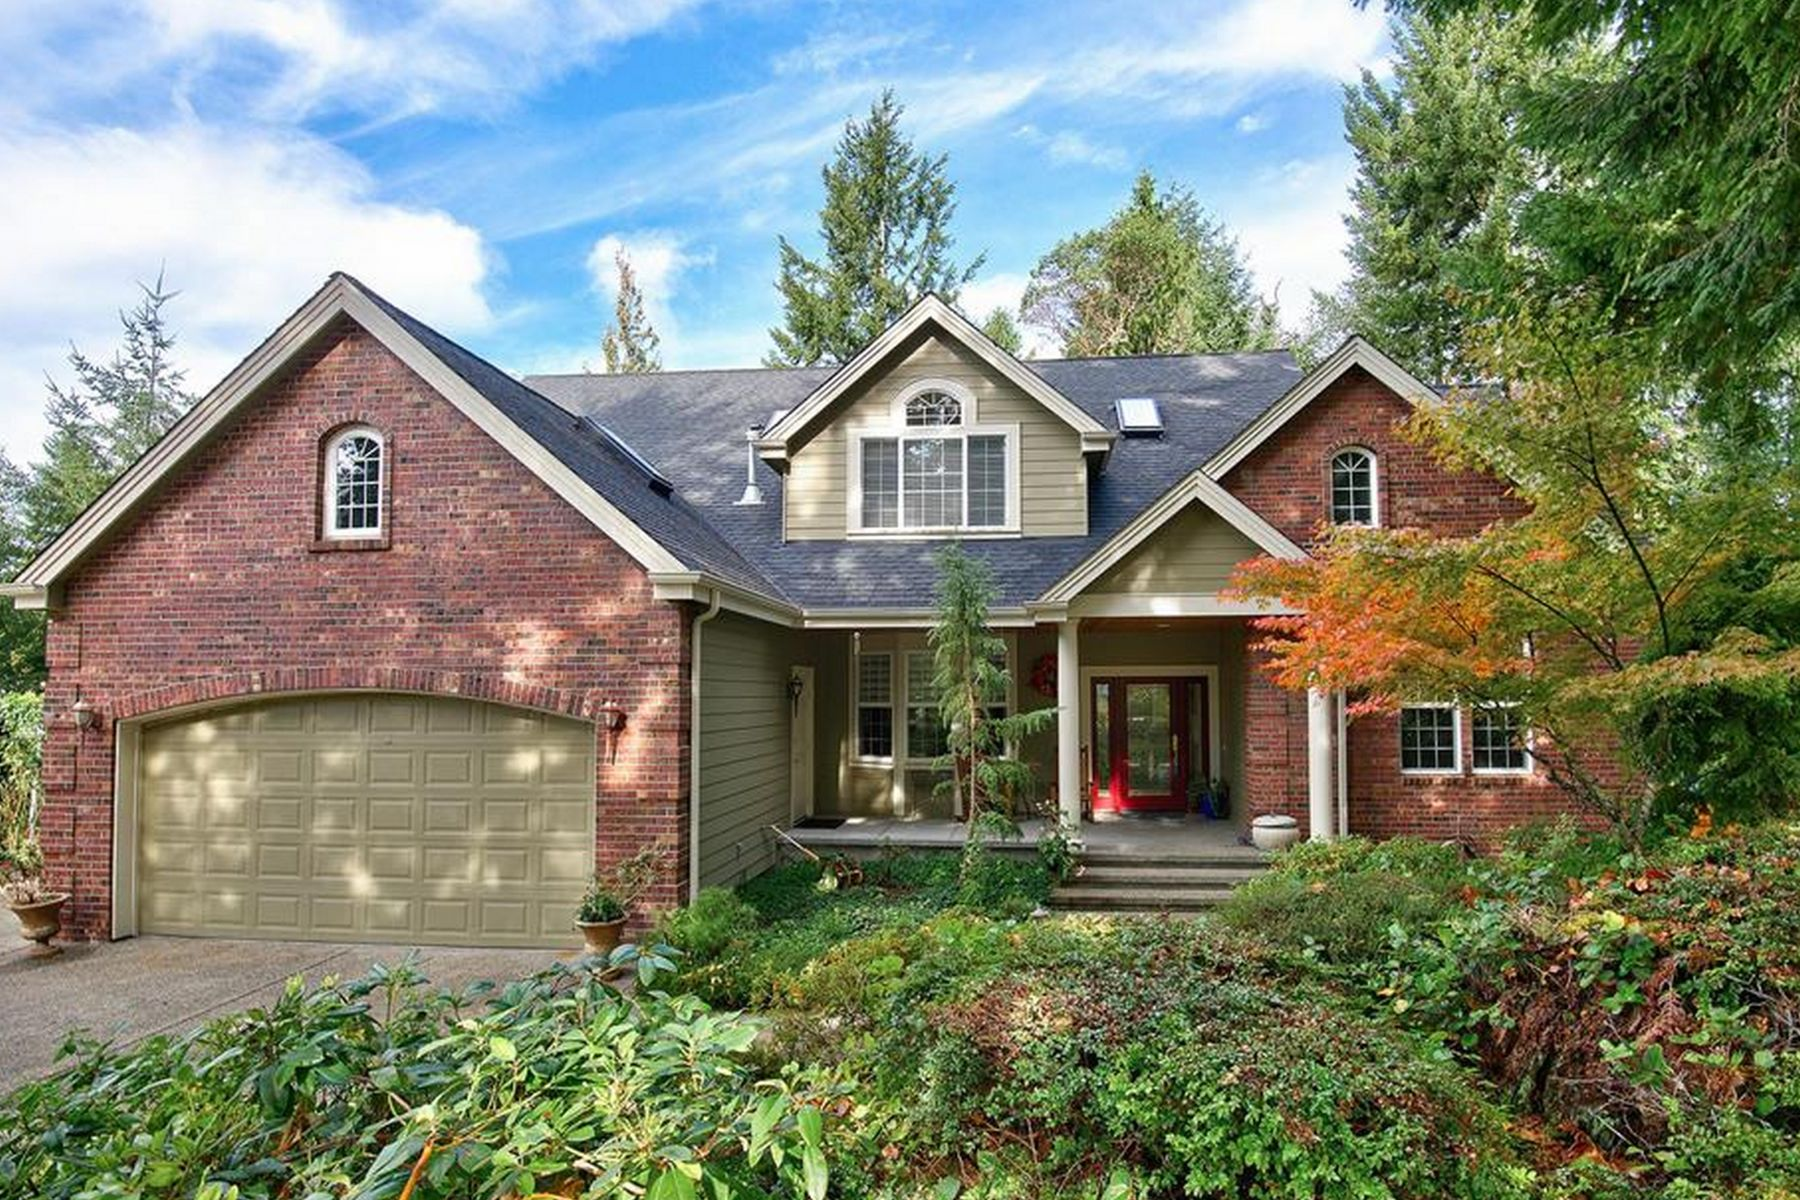 Maison unifamiliale pour l Vente à Large Living in Canterwood 11801 Sorrel Run NW Gig Harbor, Washington 98332 États-Unis